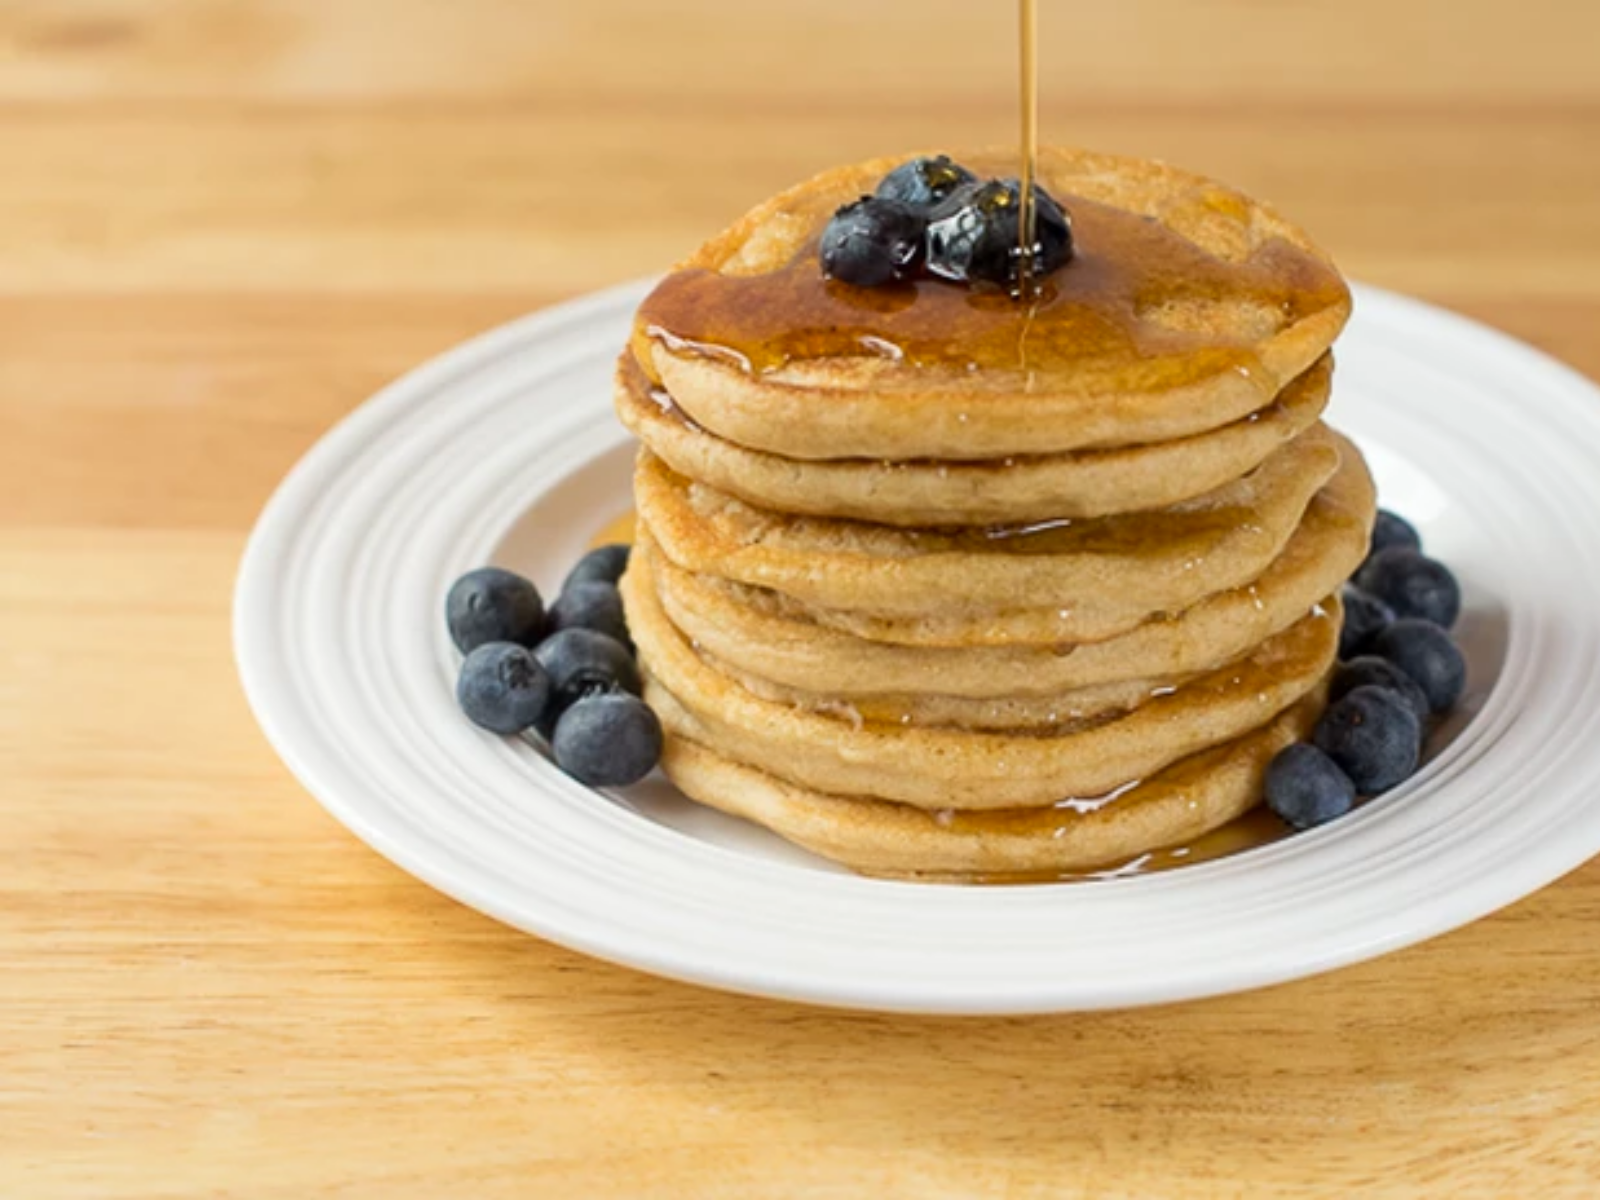 Fluffy vegan pancakes with blueberries and maple syrup